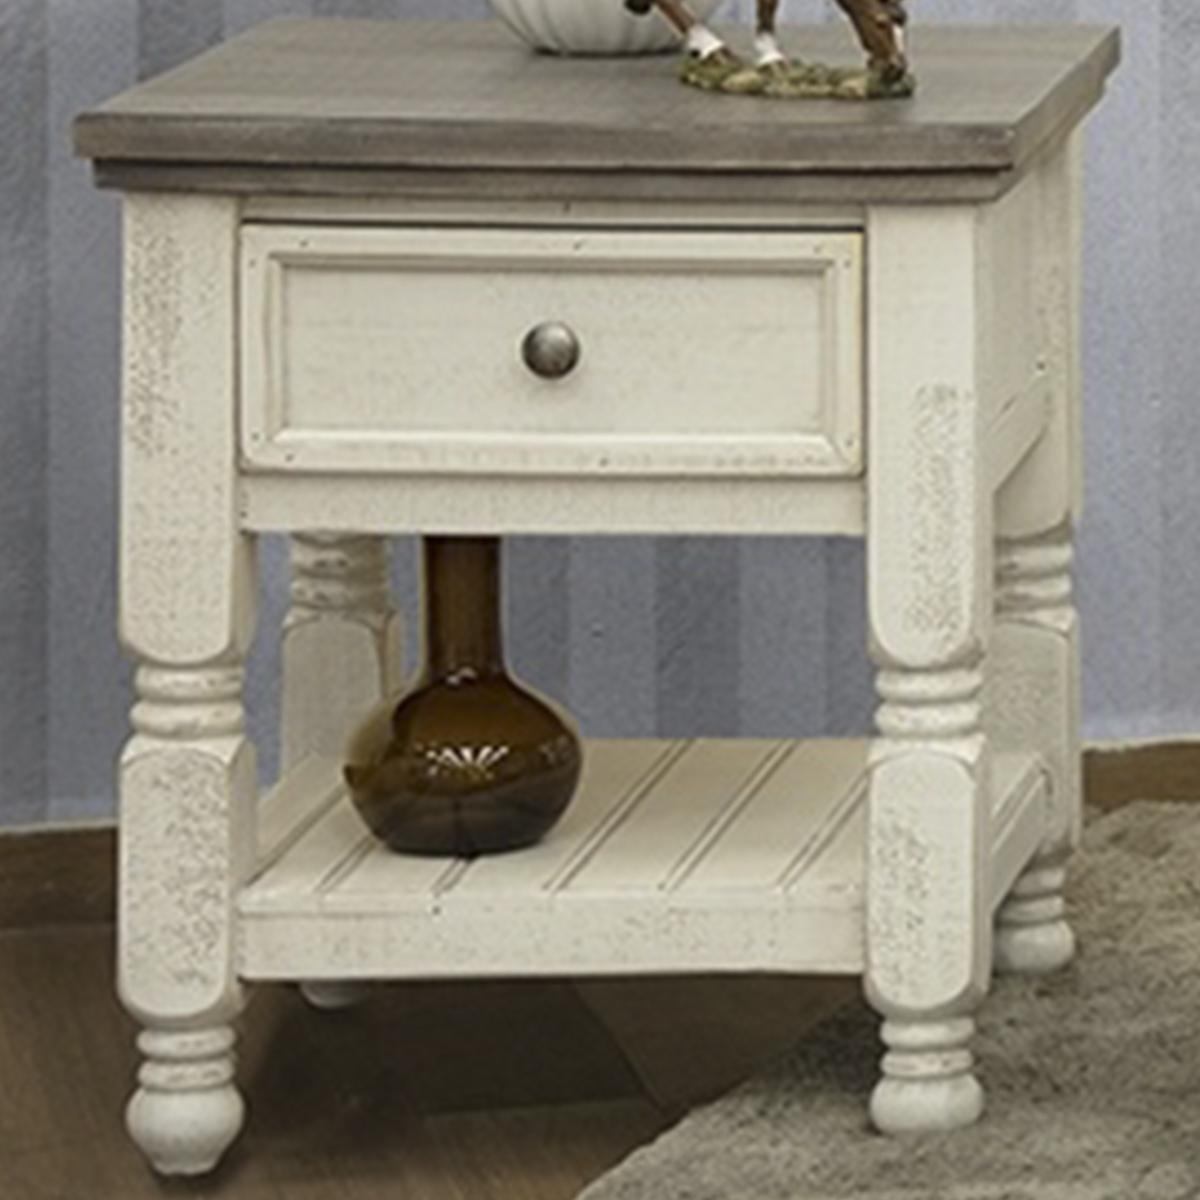 fallridge stone end table off white and gray furniture tables gold geometric side big lots any good wrought iron coffee with top solid metal dog crate little black source raleigh